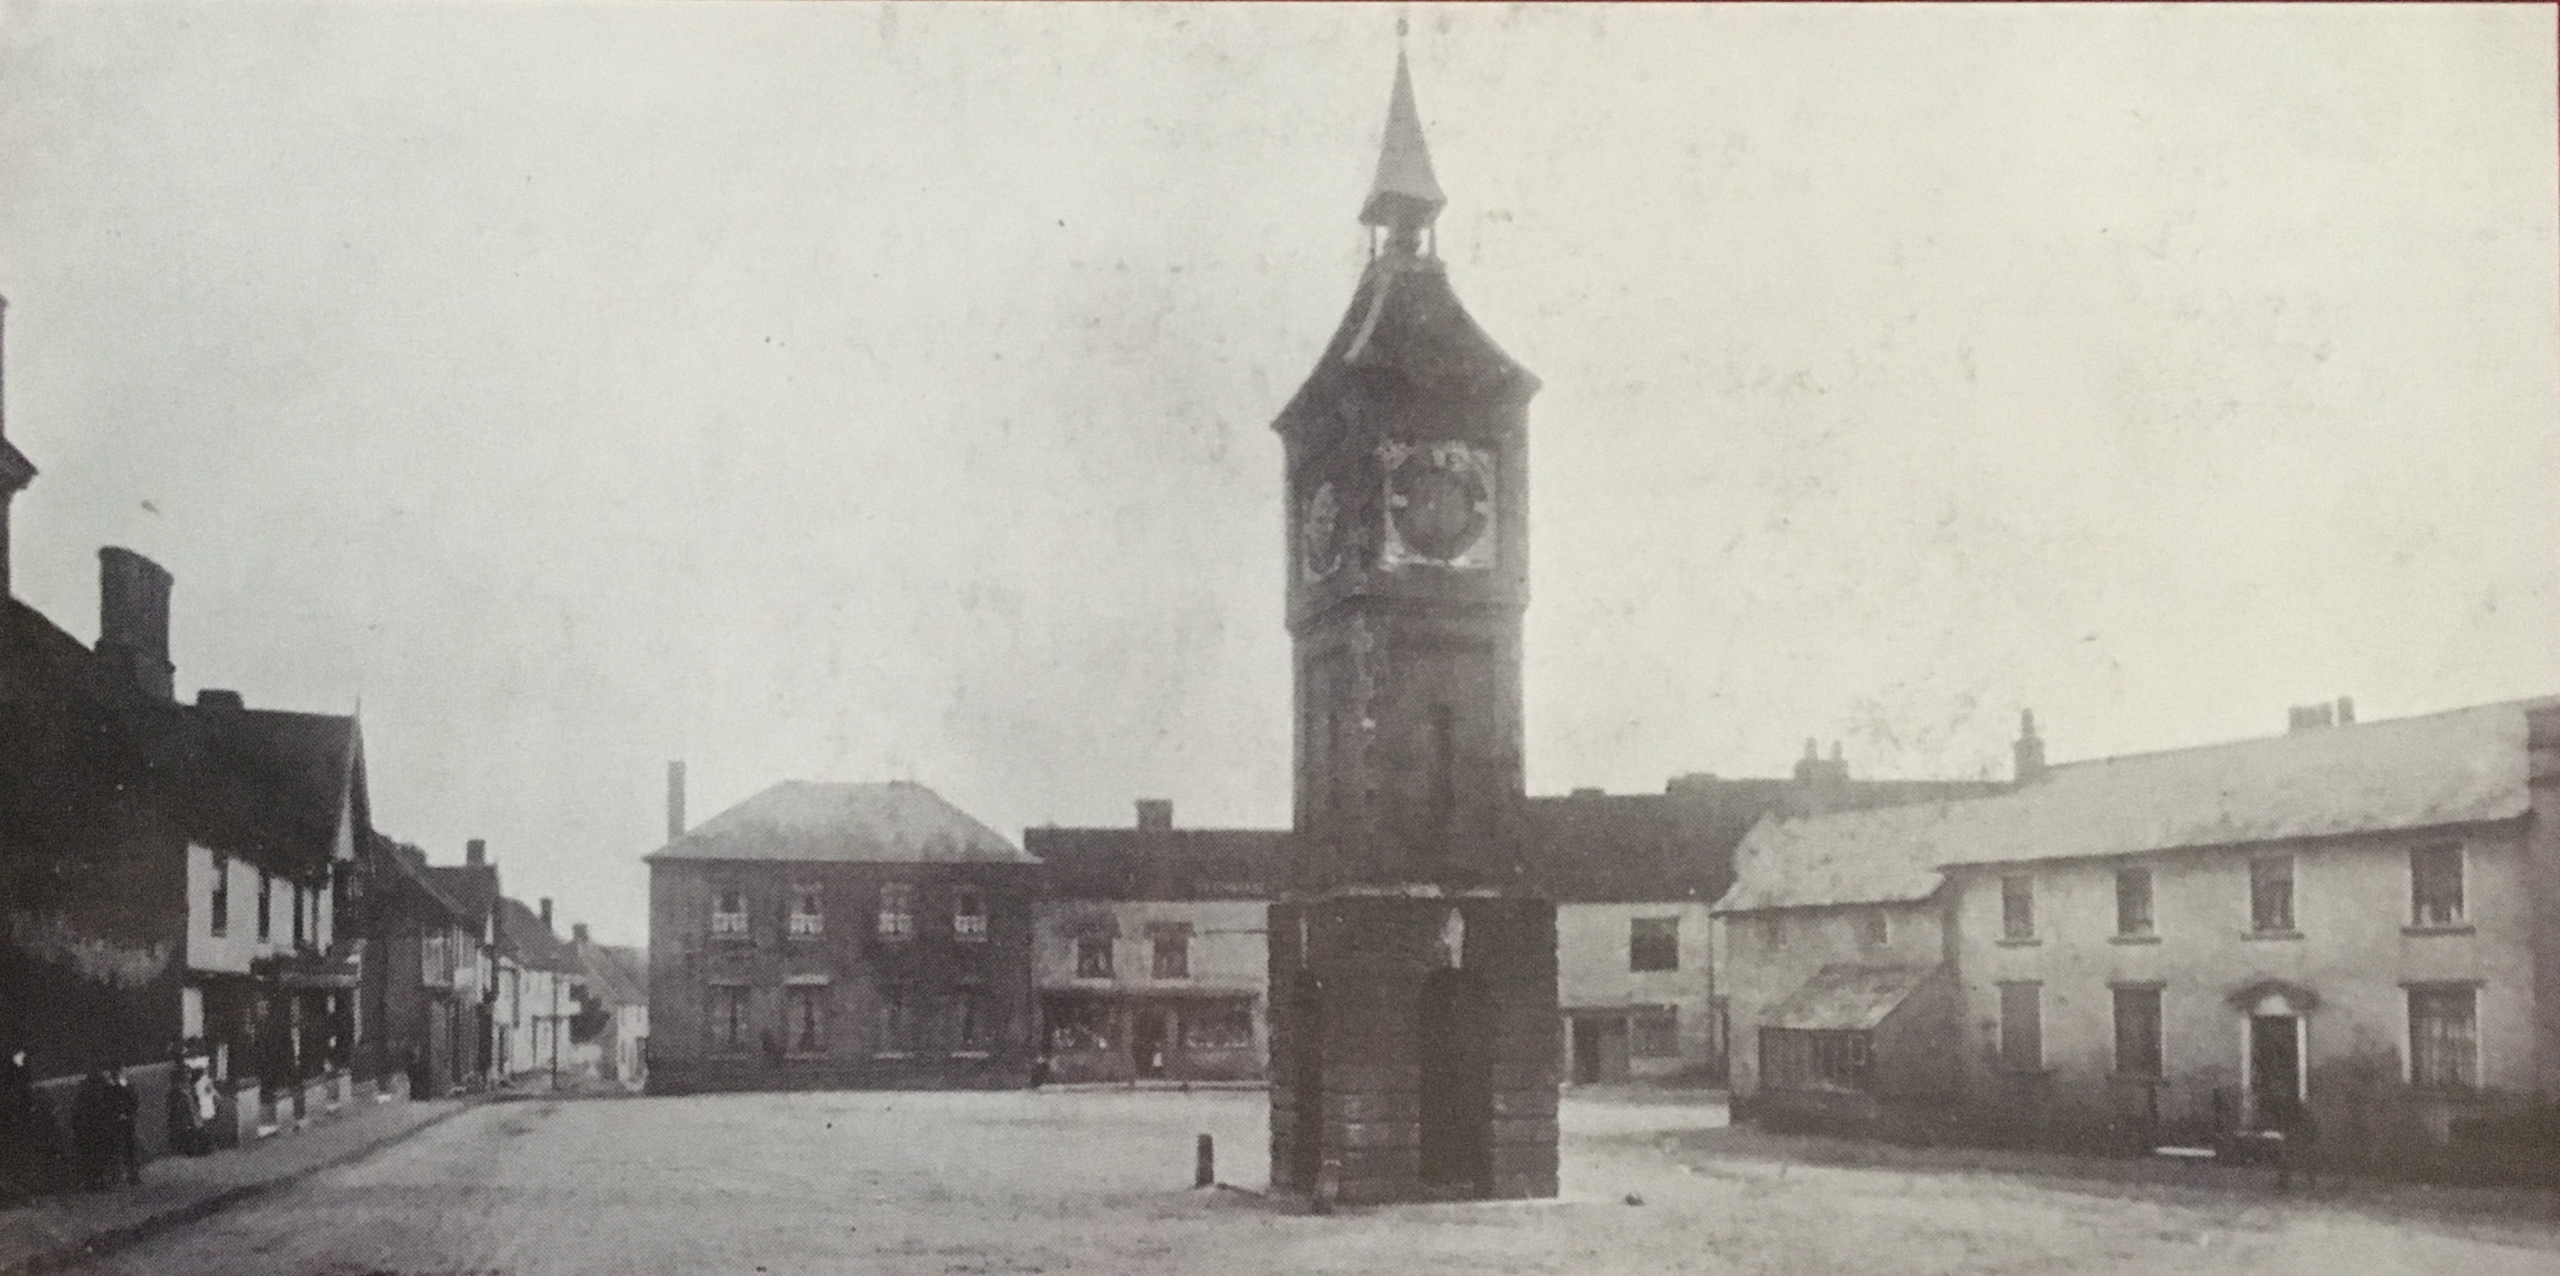 Image of the view of Bildeston Market Place about 1900 looking south.